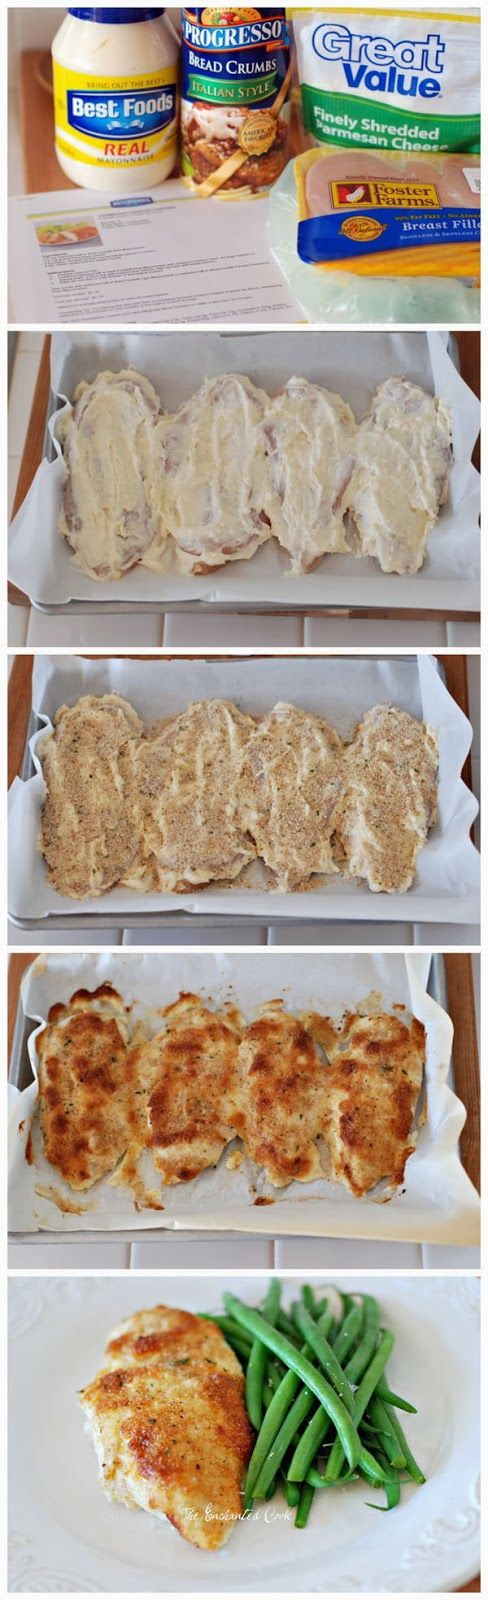 Parmesan Crusted Chicken-/2 cup Hellmann's or Best Food's Real Mayonnaise 1/4 cup shredded Parmesan cheese 4 boneless skinless chicken breast cutlets, about 1 1/4 lbs. total weight or about 5 ounces per breast 4 teaspoons Italian seasoned dry bread crumbs